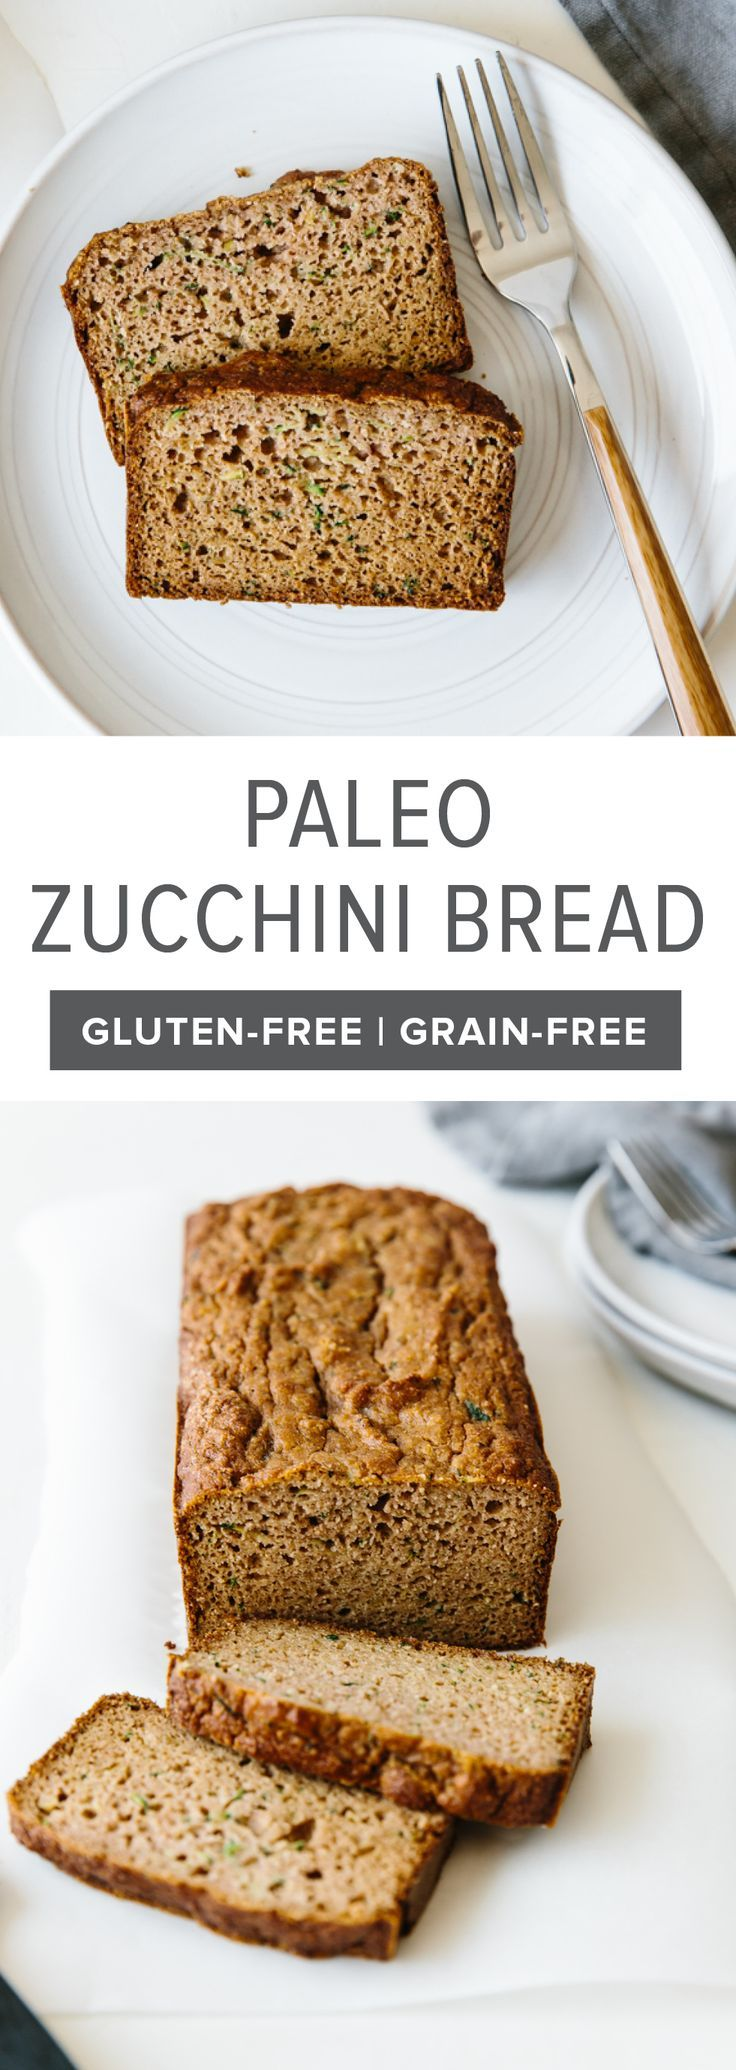 This Super Moist Paleo Zucchini Bread Recipe Is Made With Almond Flour Tapioca Flour And Coconut Paleo Zucchini Bread Gluten Free Zucchini Bread Paleo Baking